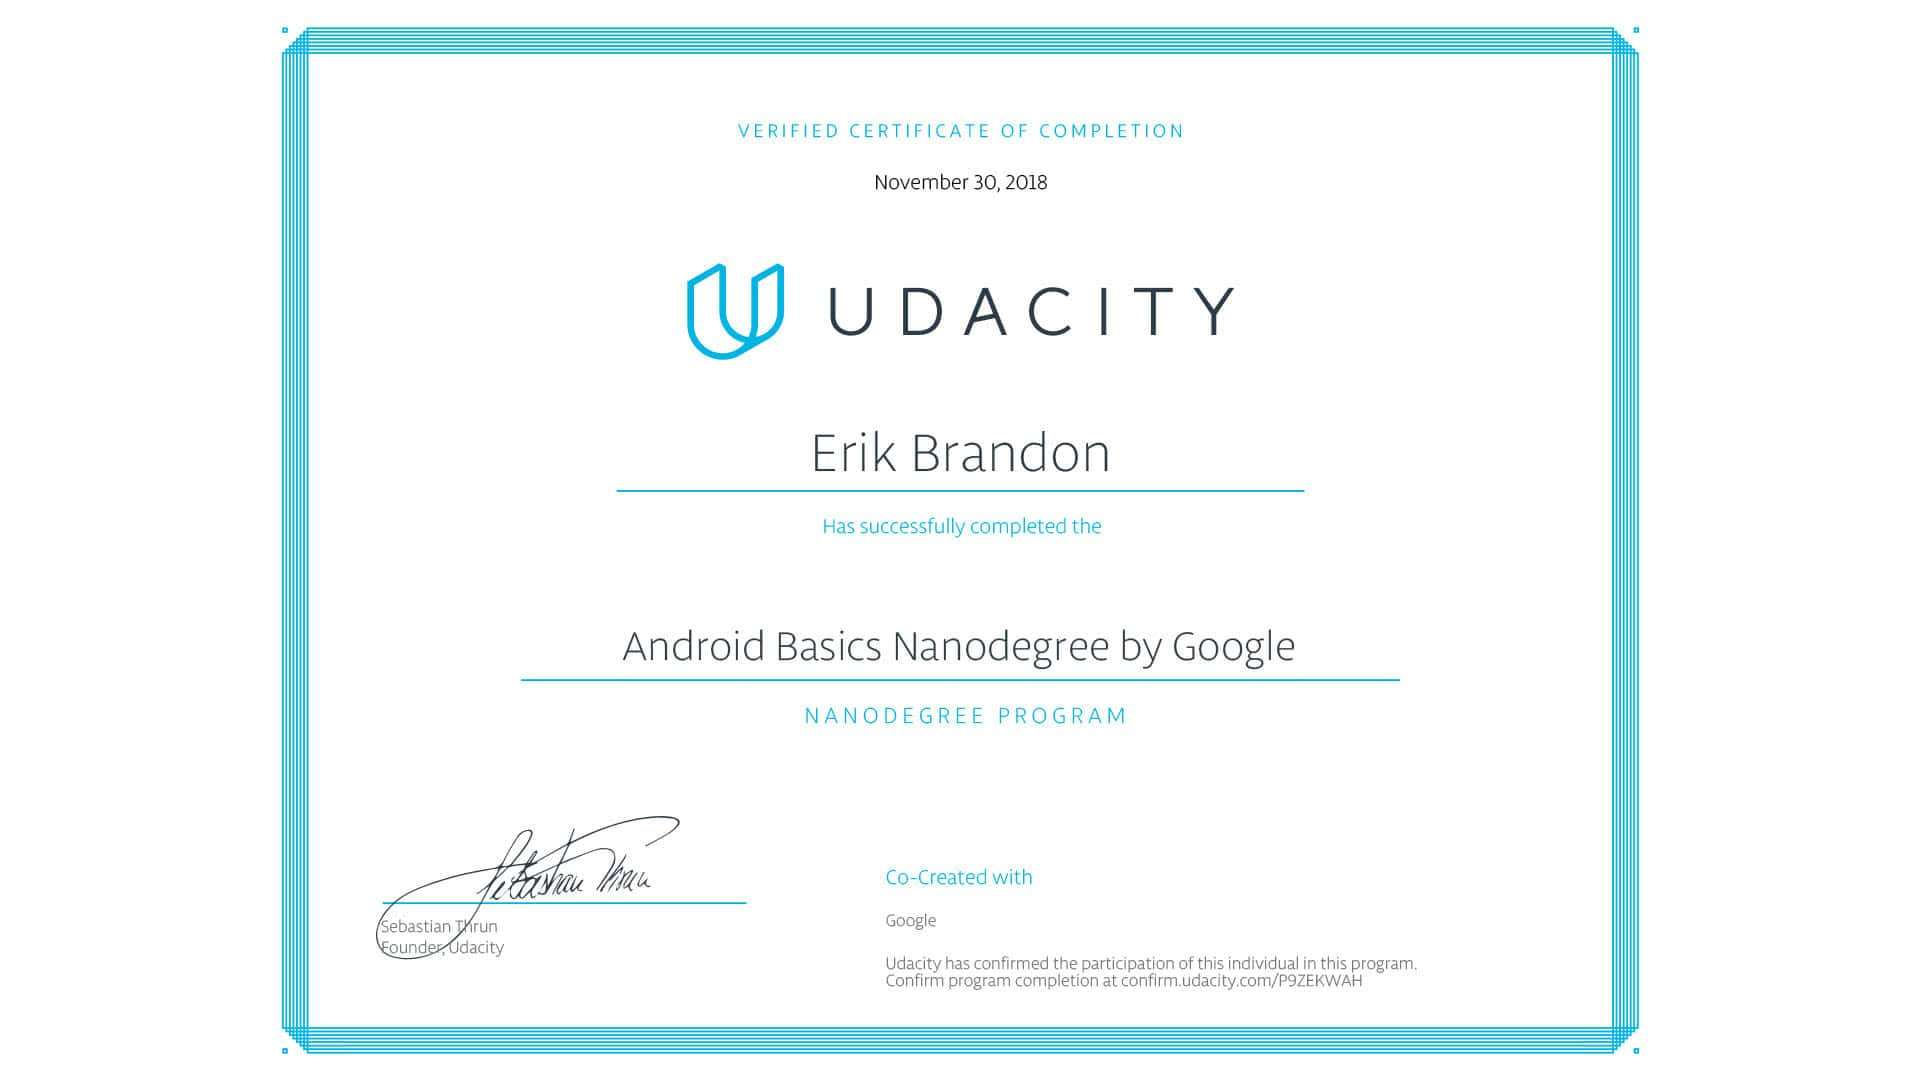 udacity-android-basics-nanodegree-certificate-of-completion